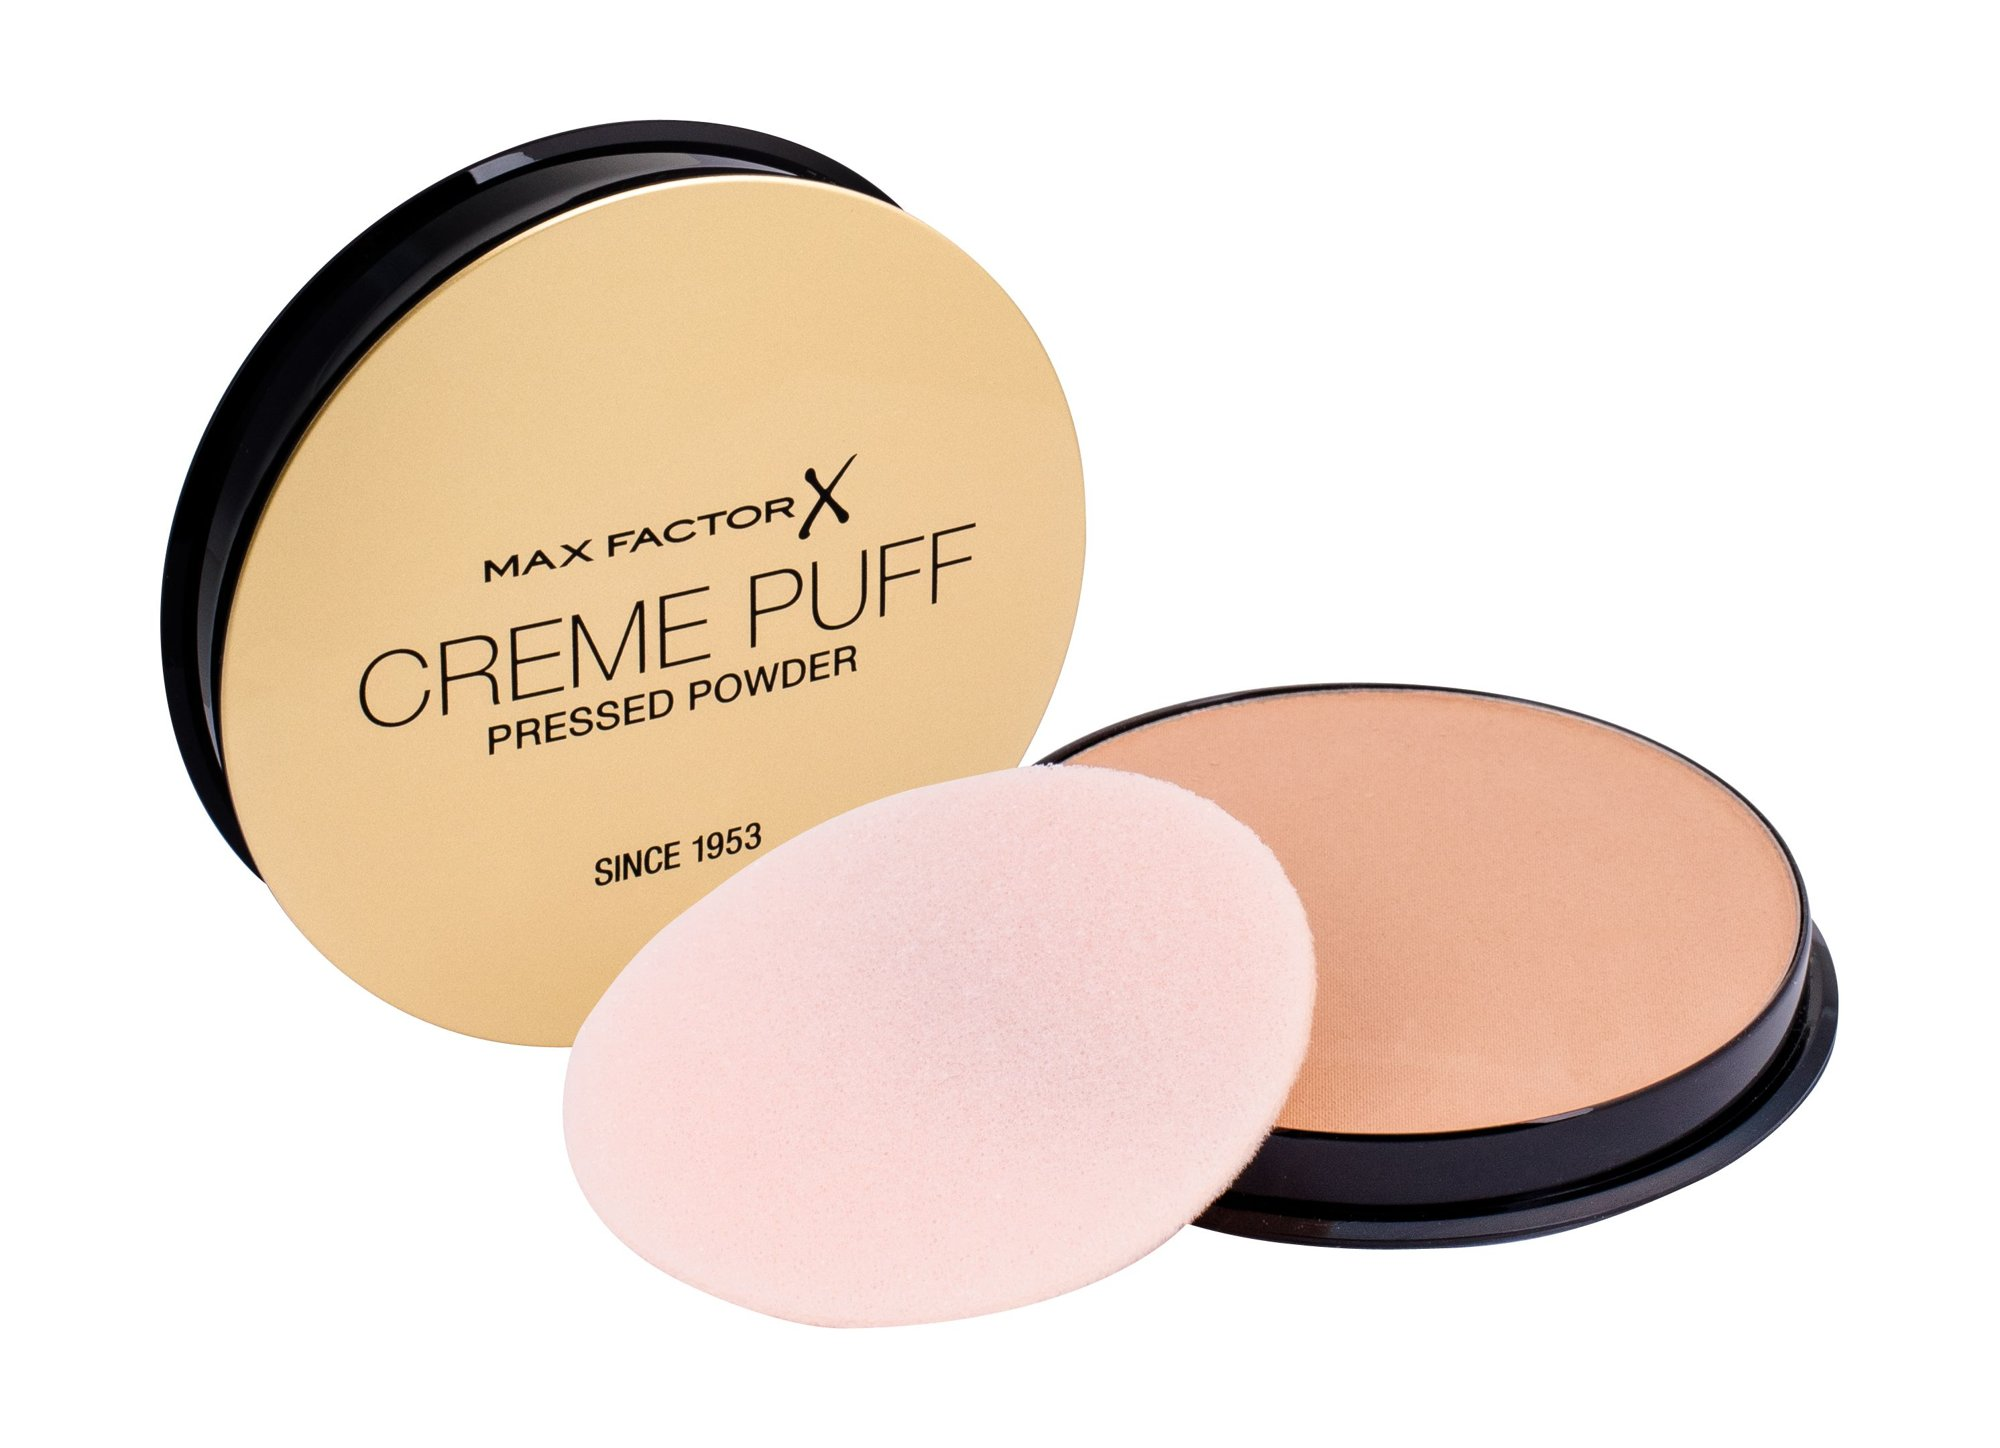 Max Factor Creme Puff Pressed Powder Cosmetic 21g 05 Translucent